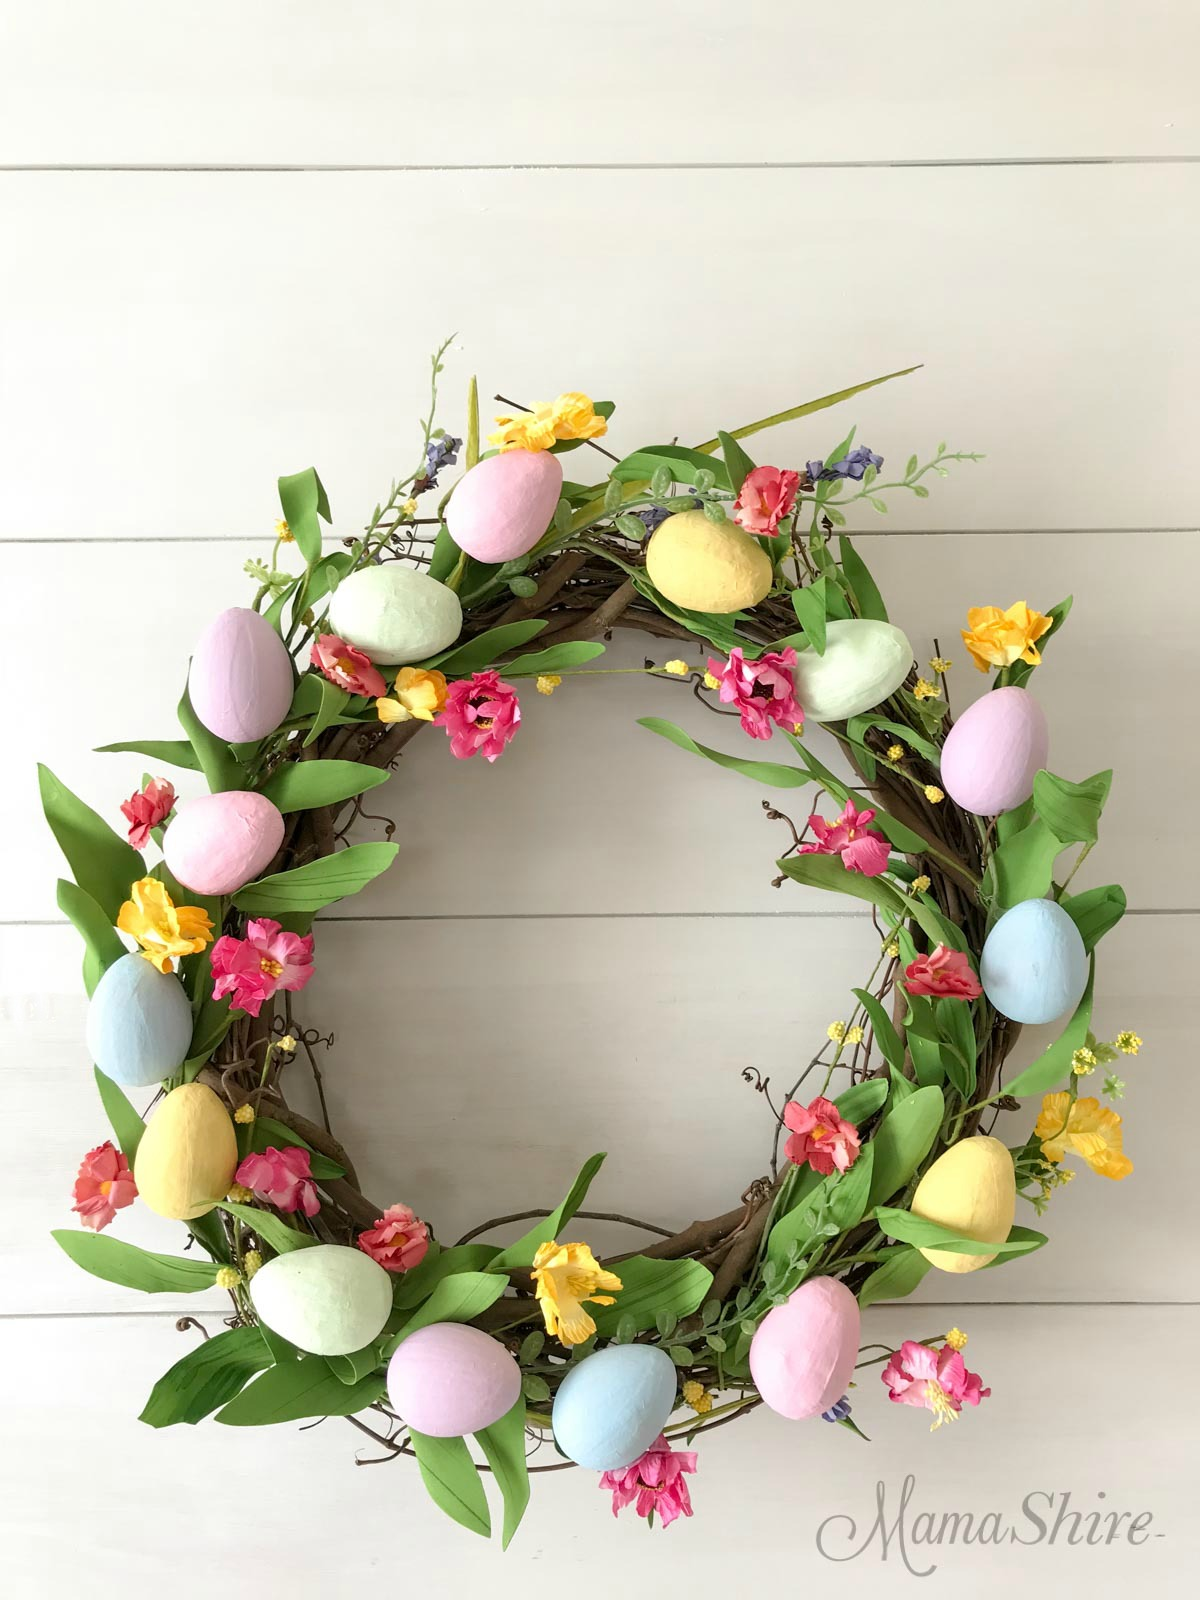 Pretty spring wreath with flowers and painted paper mache eggs.